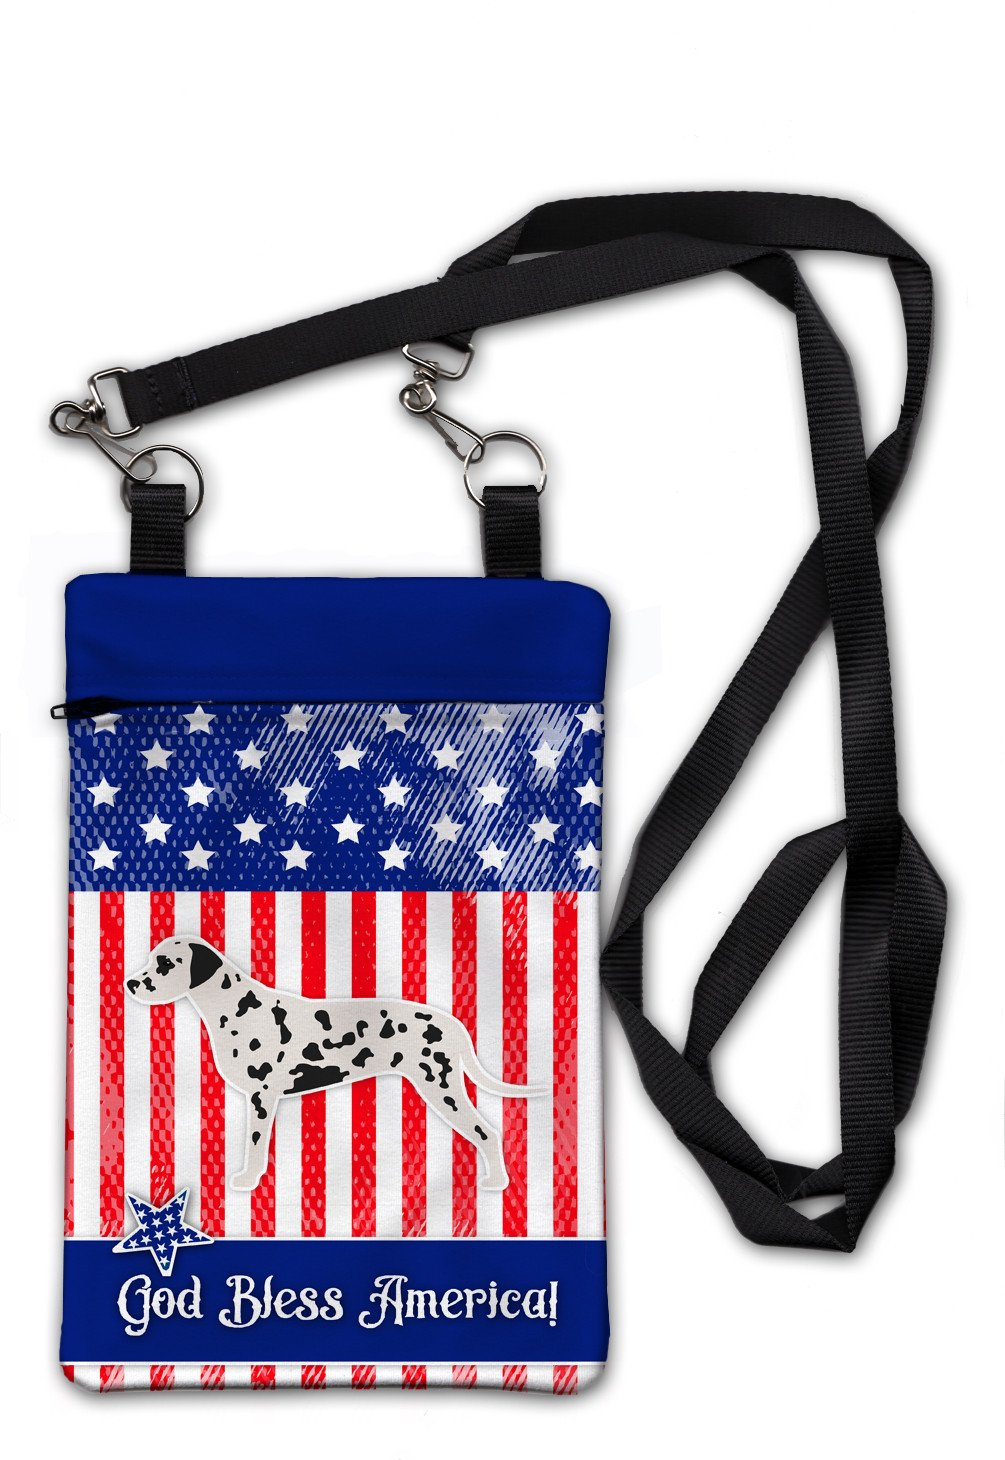 USA Patriotic Dalmatian Crossbody Bag Purse BB3283OBDY by Caroline's Treasures